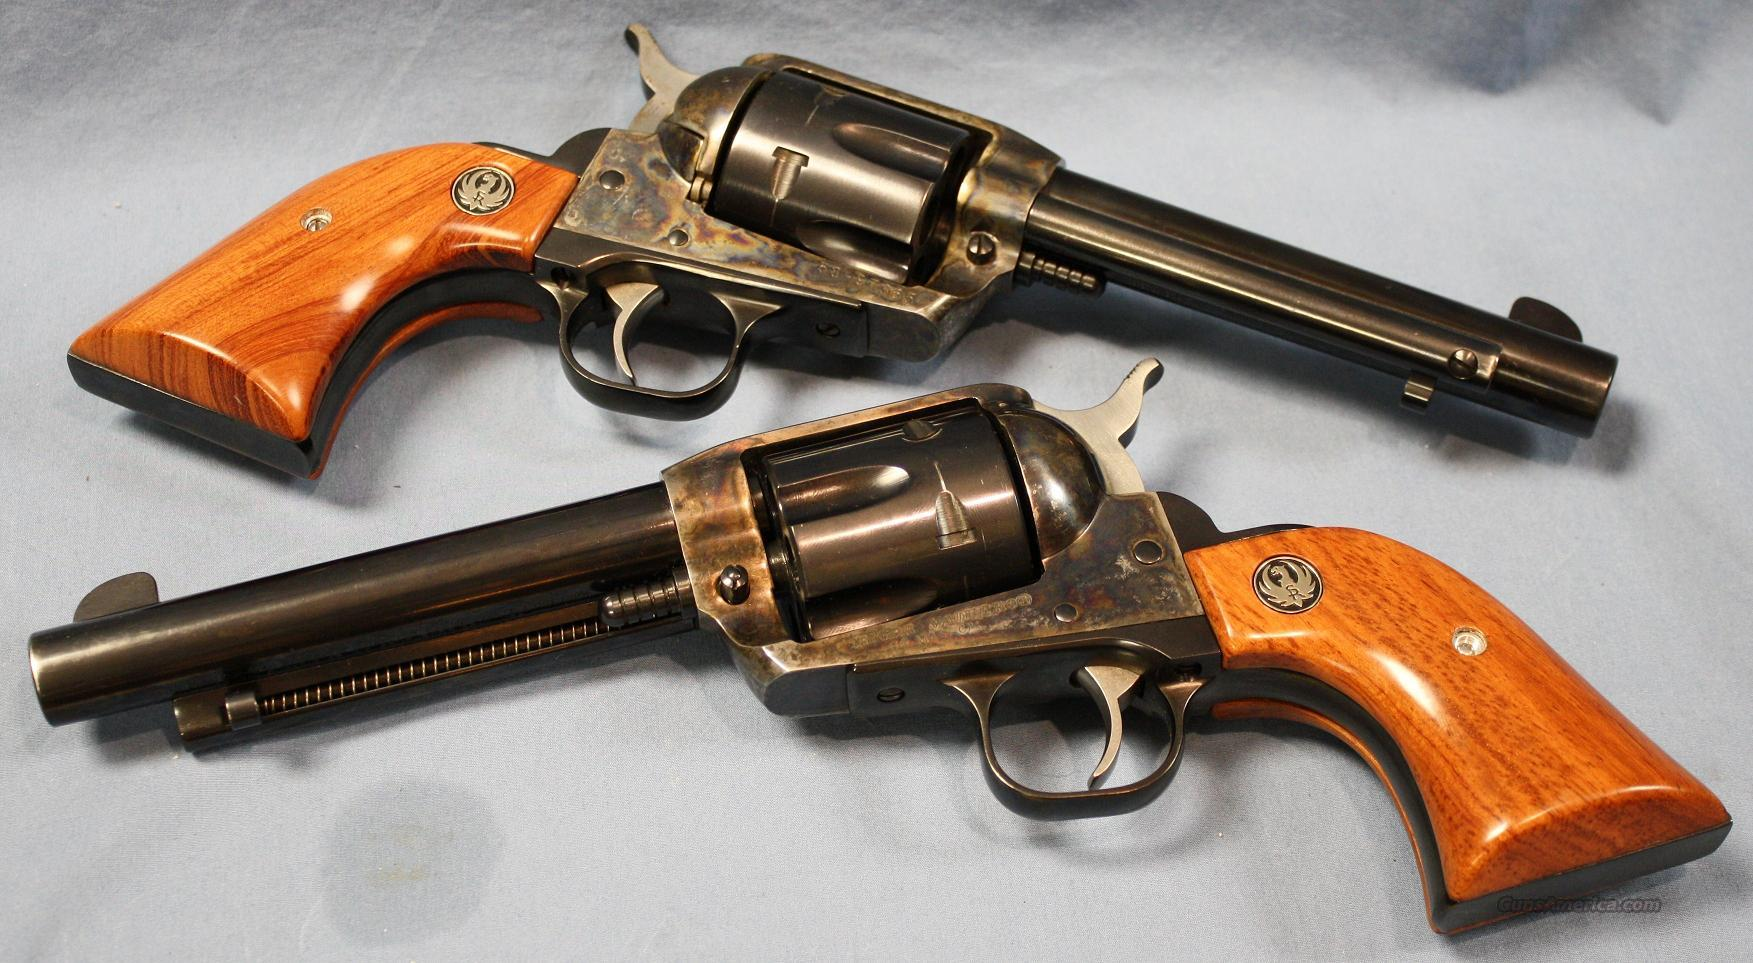 Ruger Vaquero Old Model Single Action Revolver 44 Magnum  Guns > Pistols > Ruger Single Action Revolvers > Cowboy Action